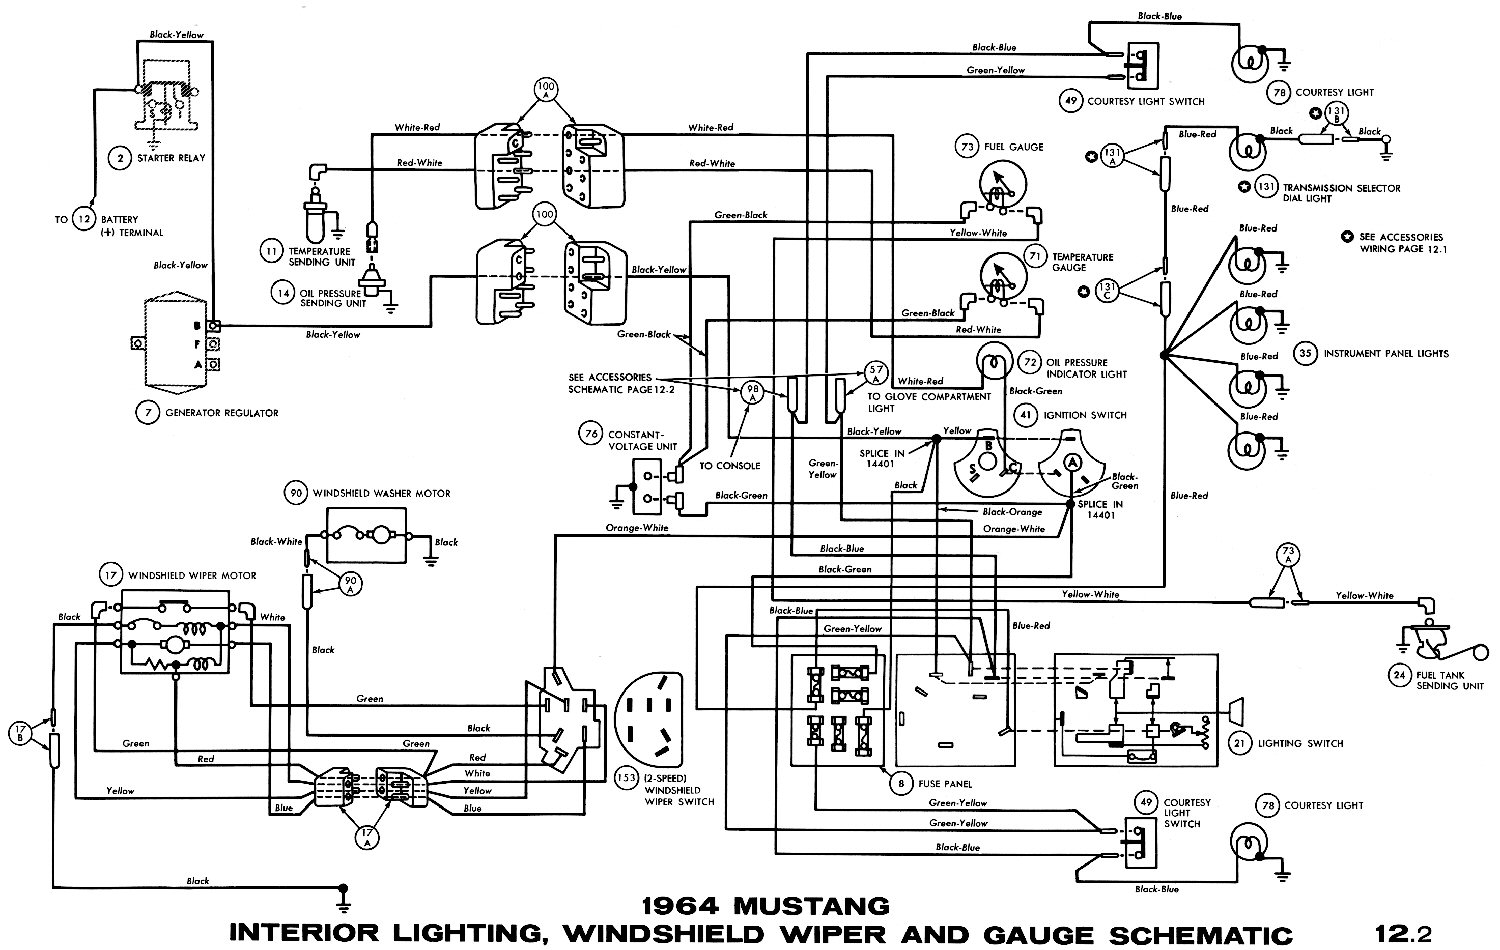 1964k 1964 mustang wiring diagrams average joe restoration 1966 fairlane wiring diagram at aneh.co